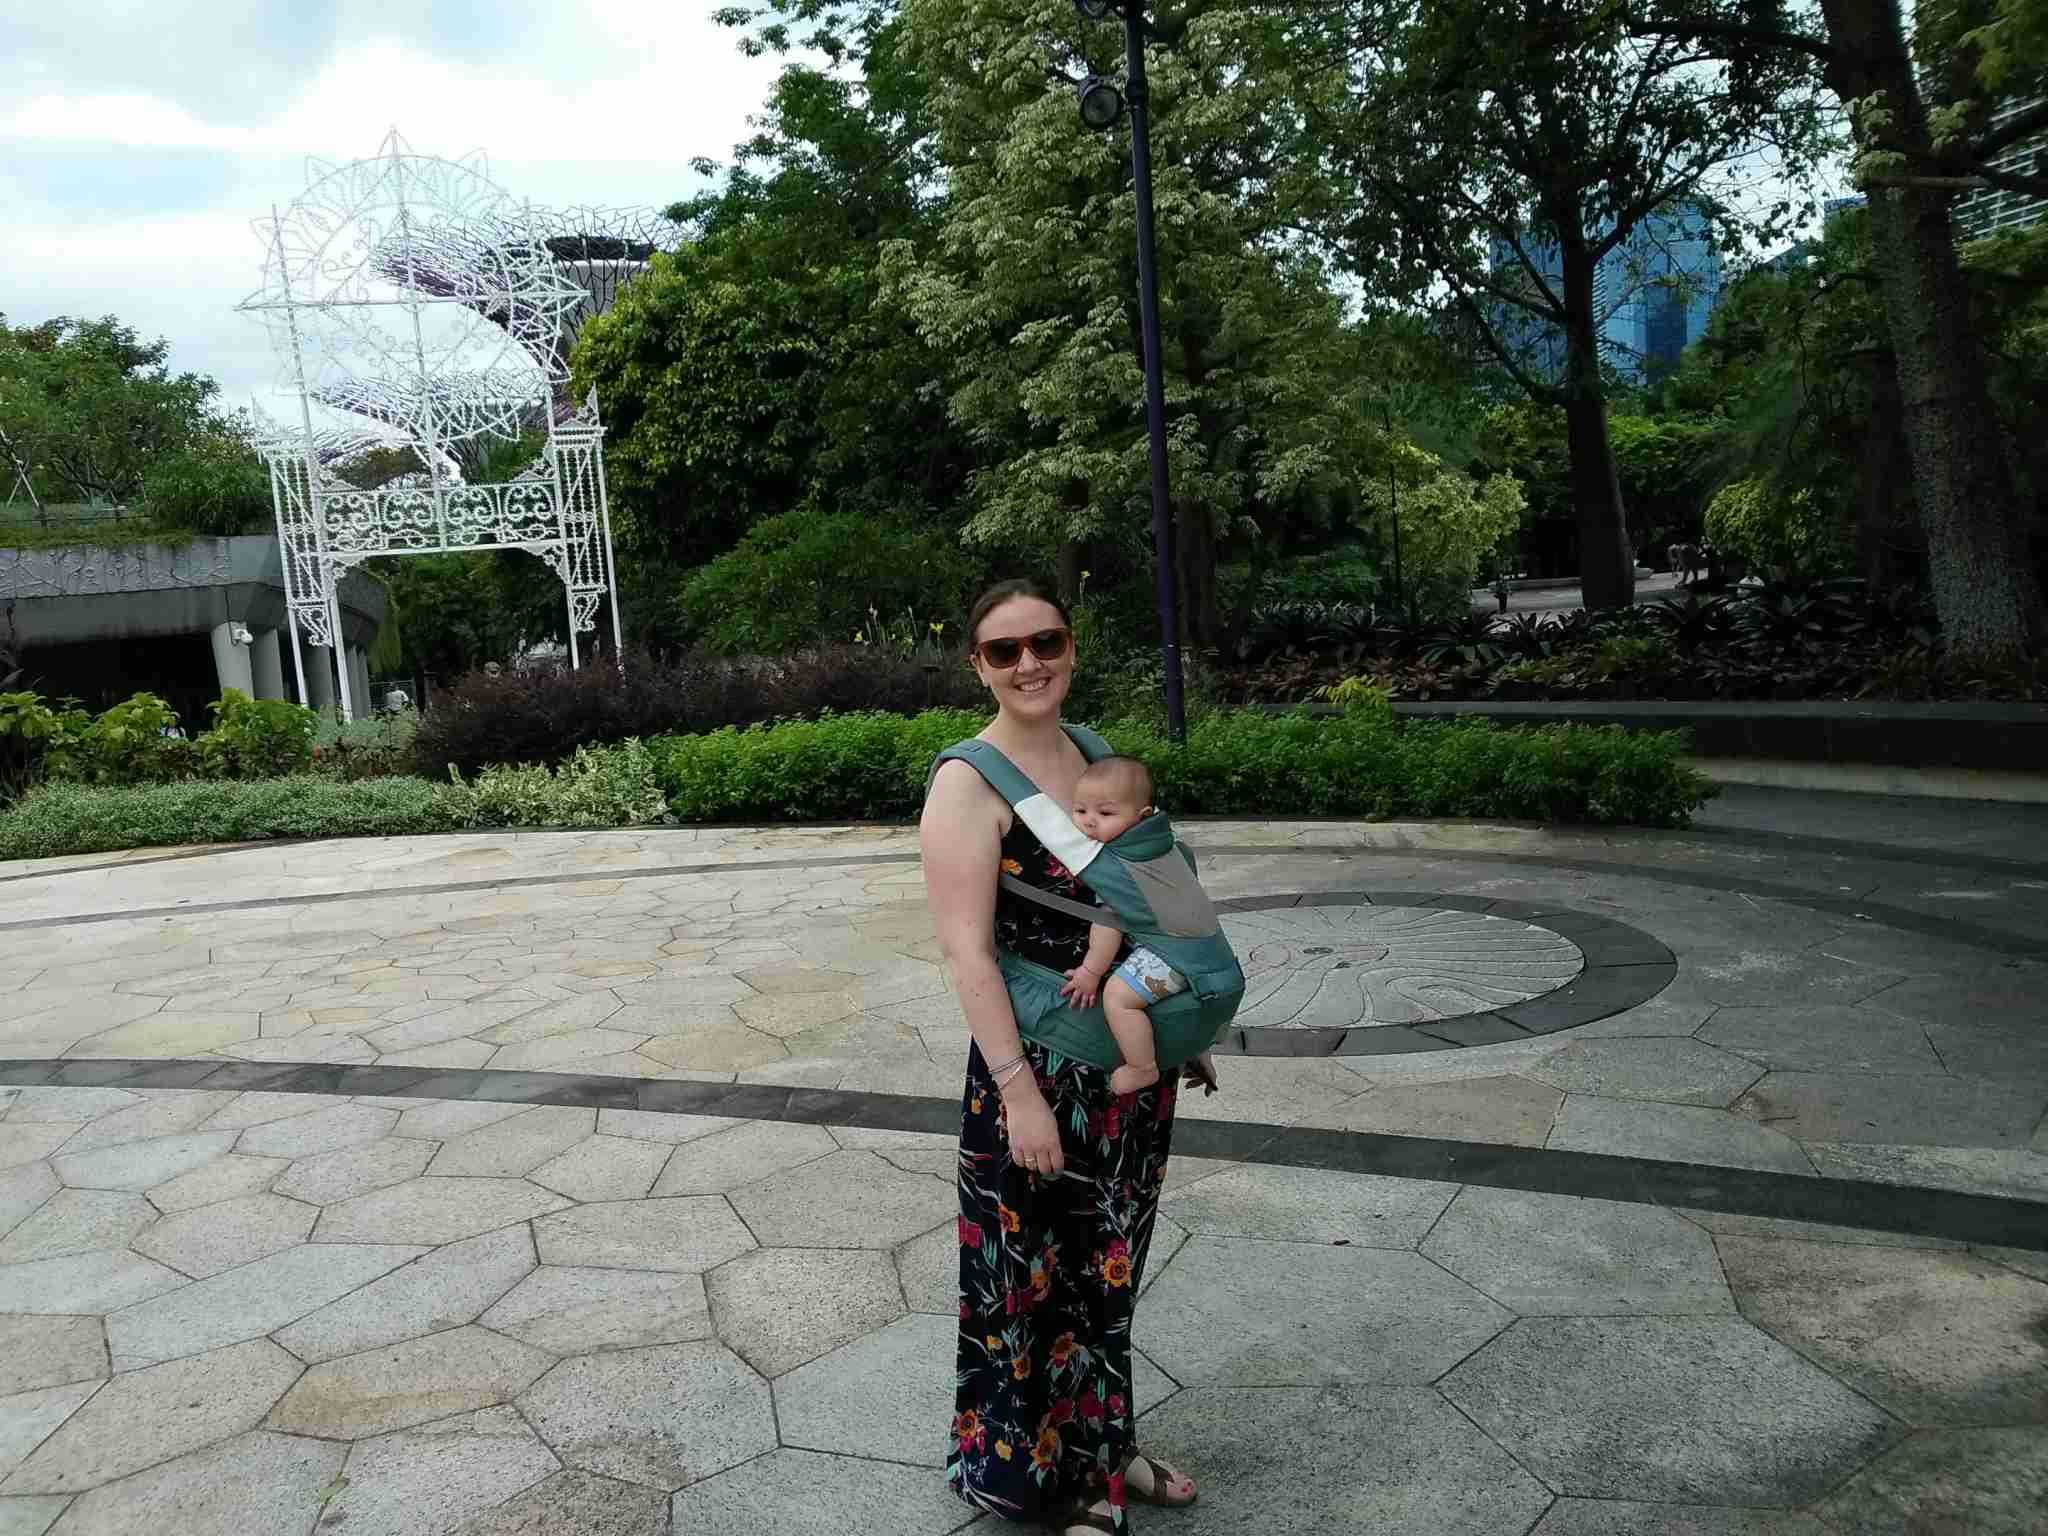 Sightseeing at the Gardens by the Bay in Singapore when my daughter was four months old. Photo by Elen Turner